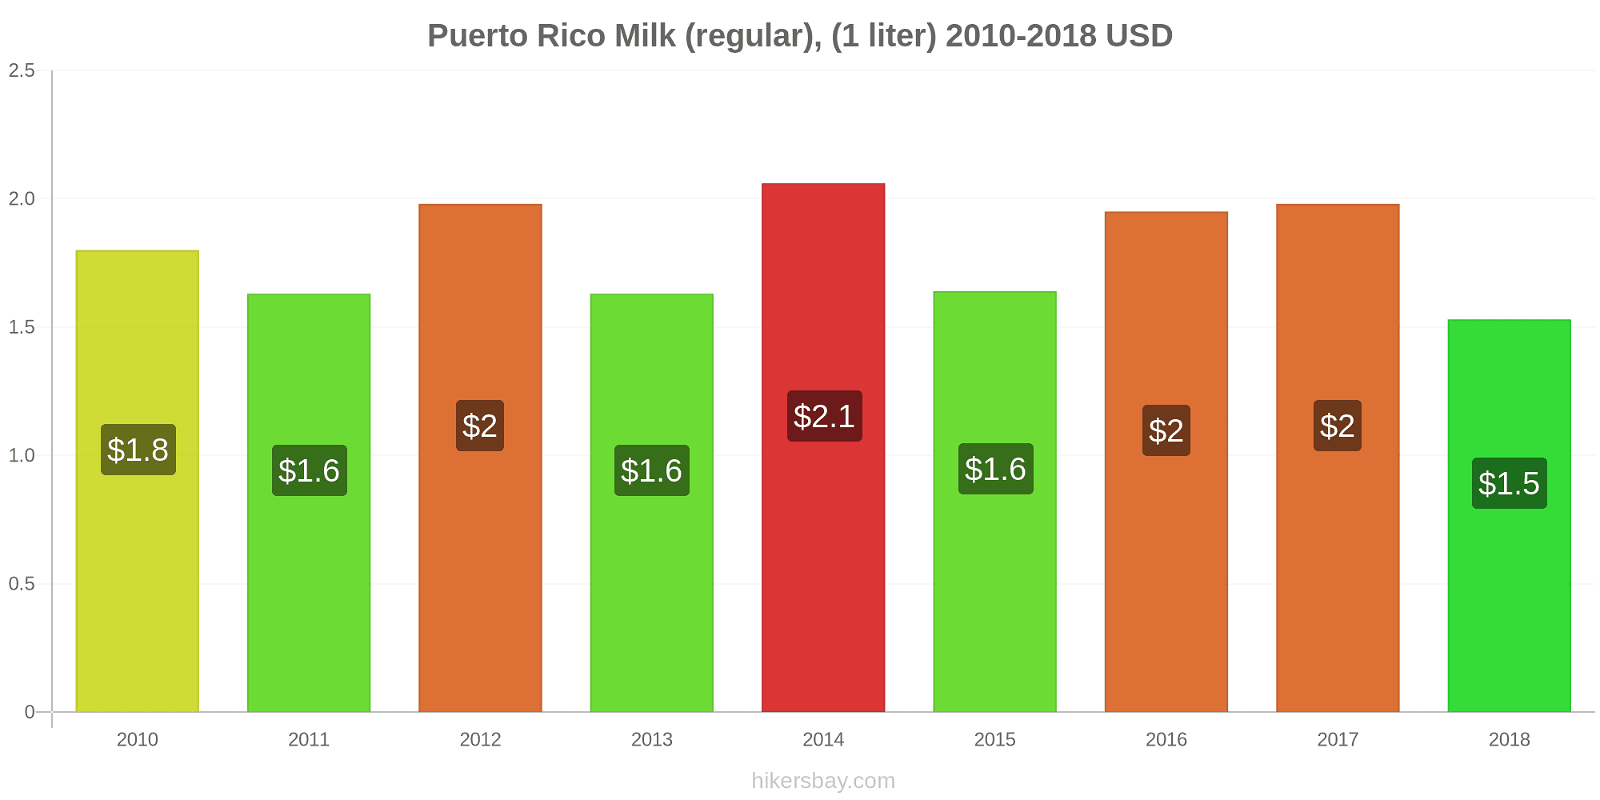 Puerto Rico price changes Milk (regular), (1 liter) hikersbay.com